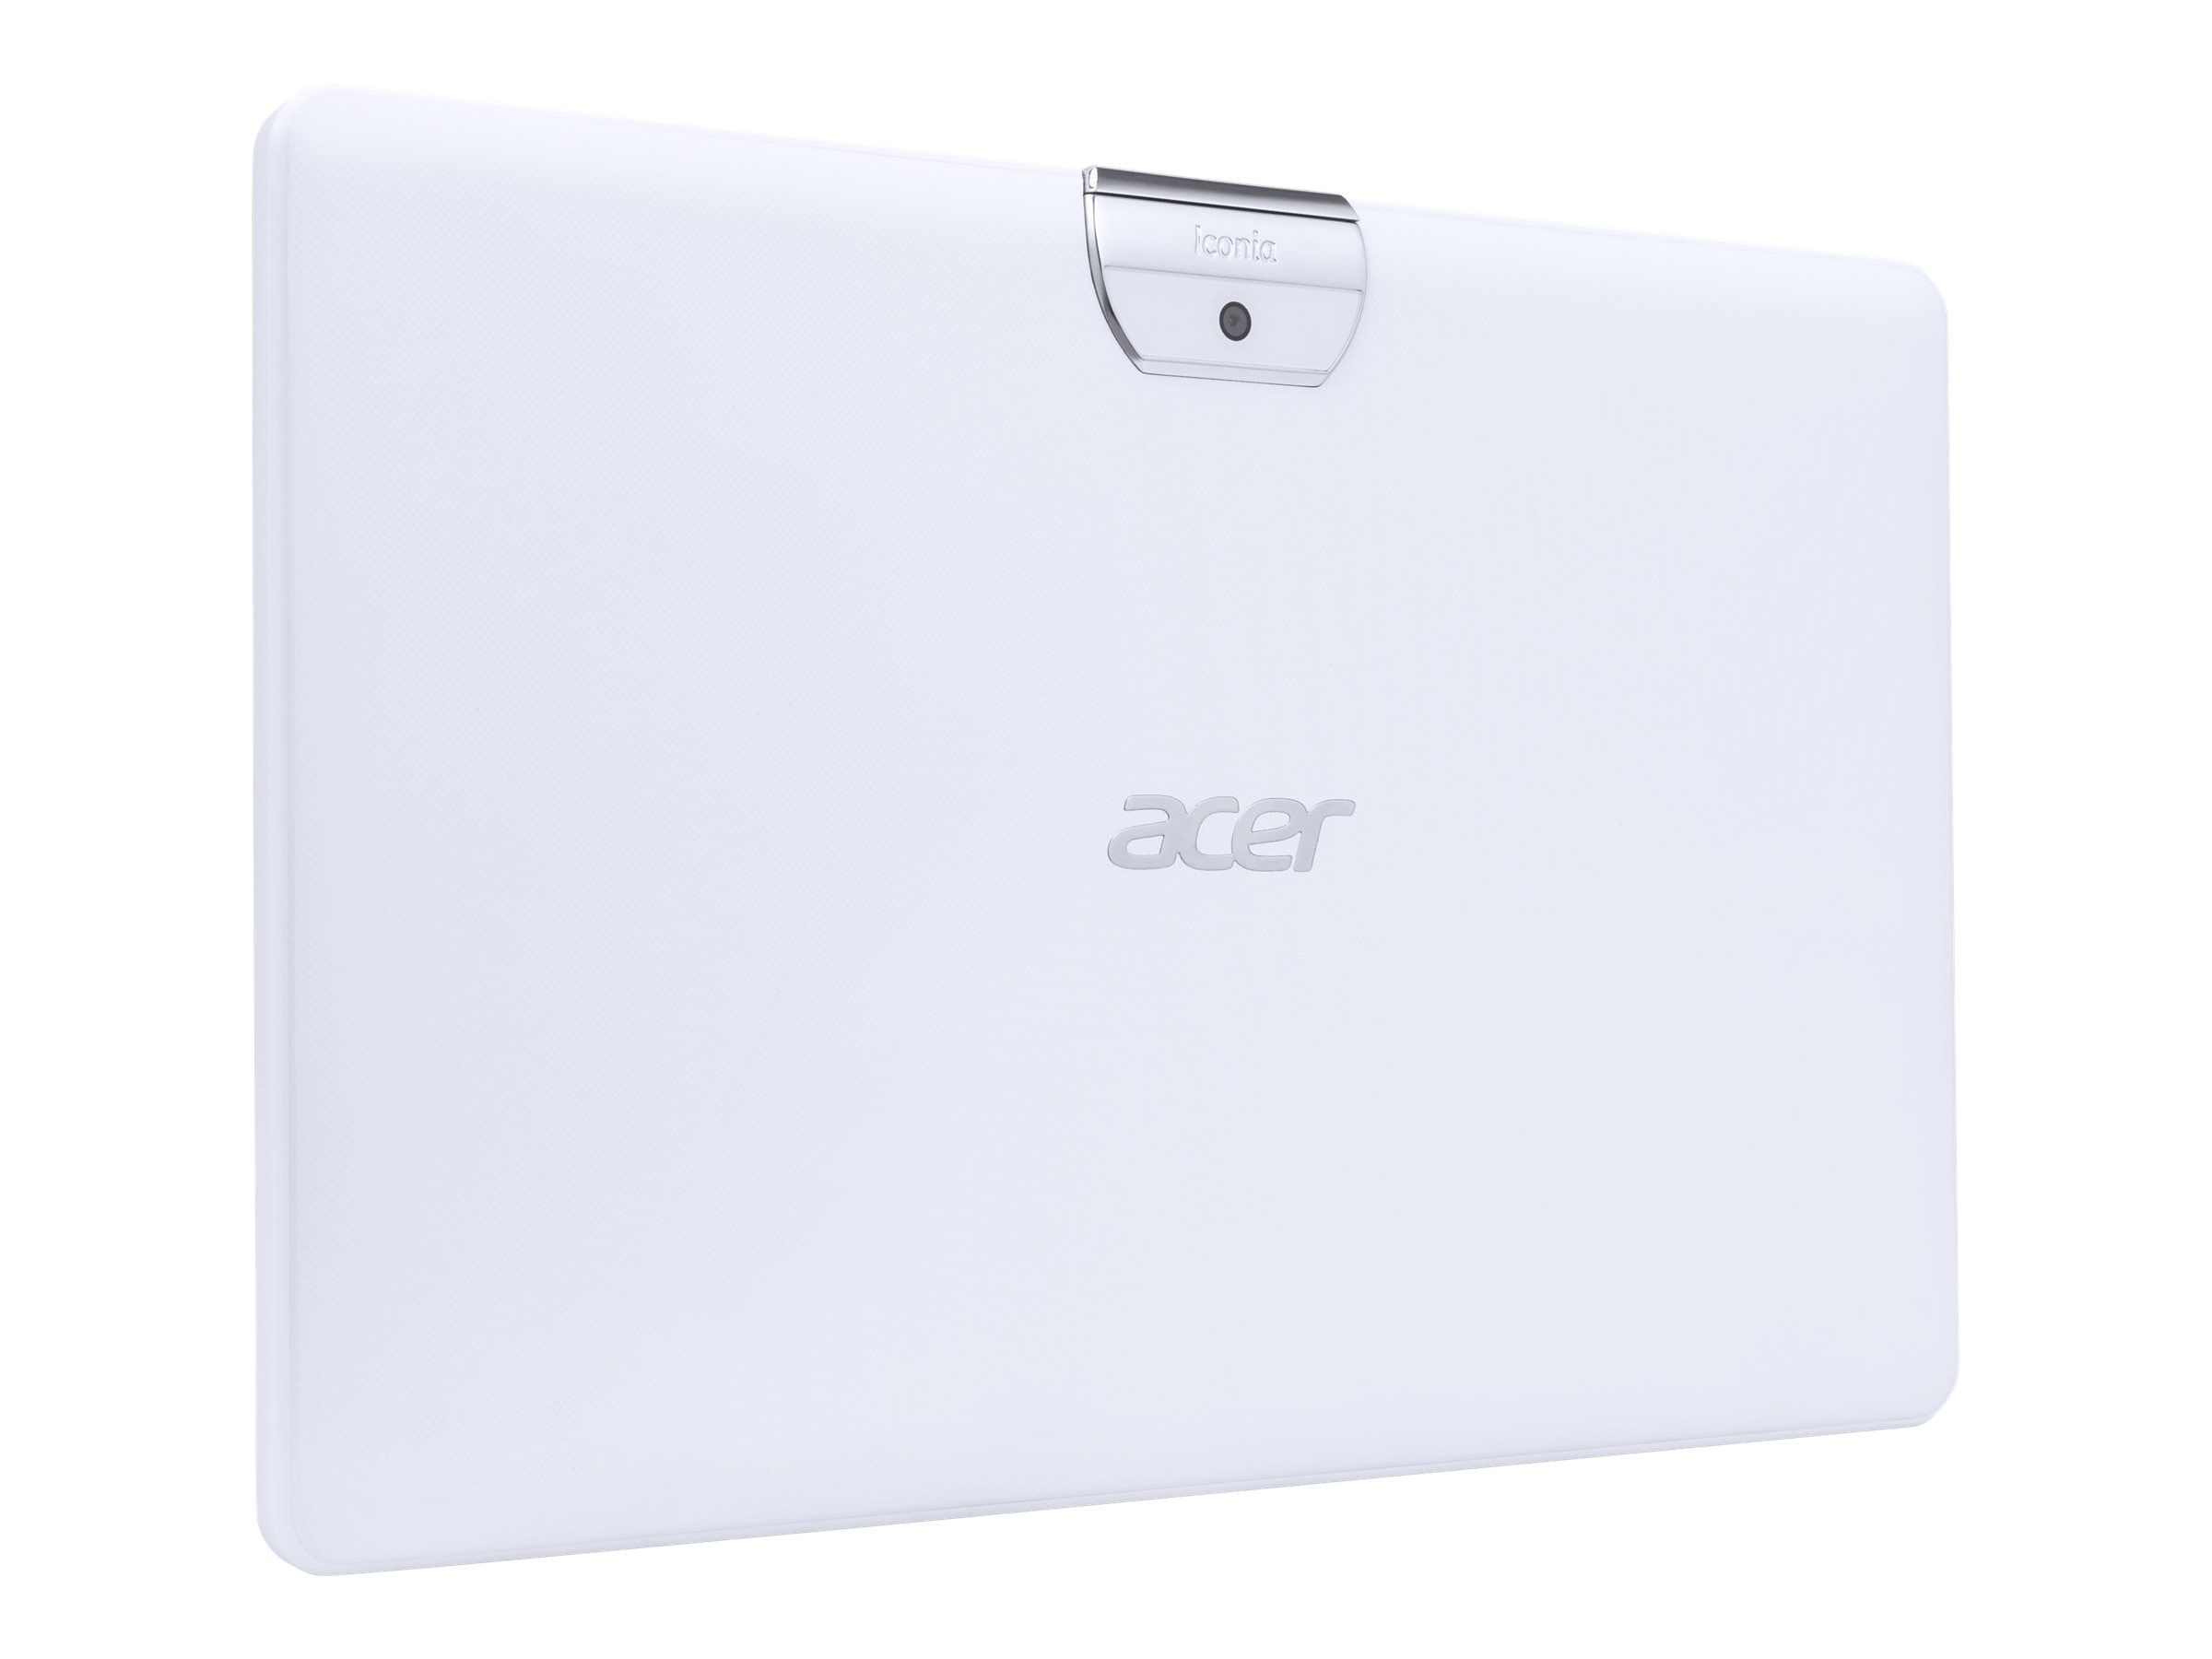 Acer Iconia B3-A30-K816 MT 8163 1.3GHz 1GB 32GB abgn BT 2xWC 2C 10.1 WXGA MT Android 6.0 White, NT.LCMAA.002